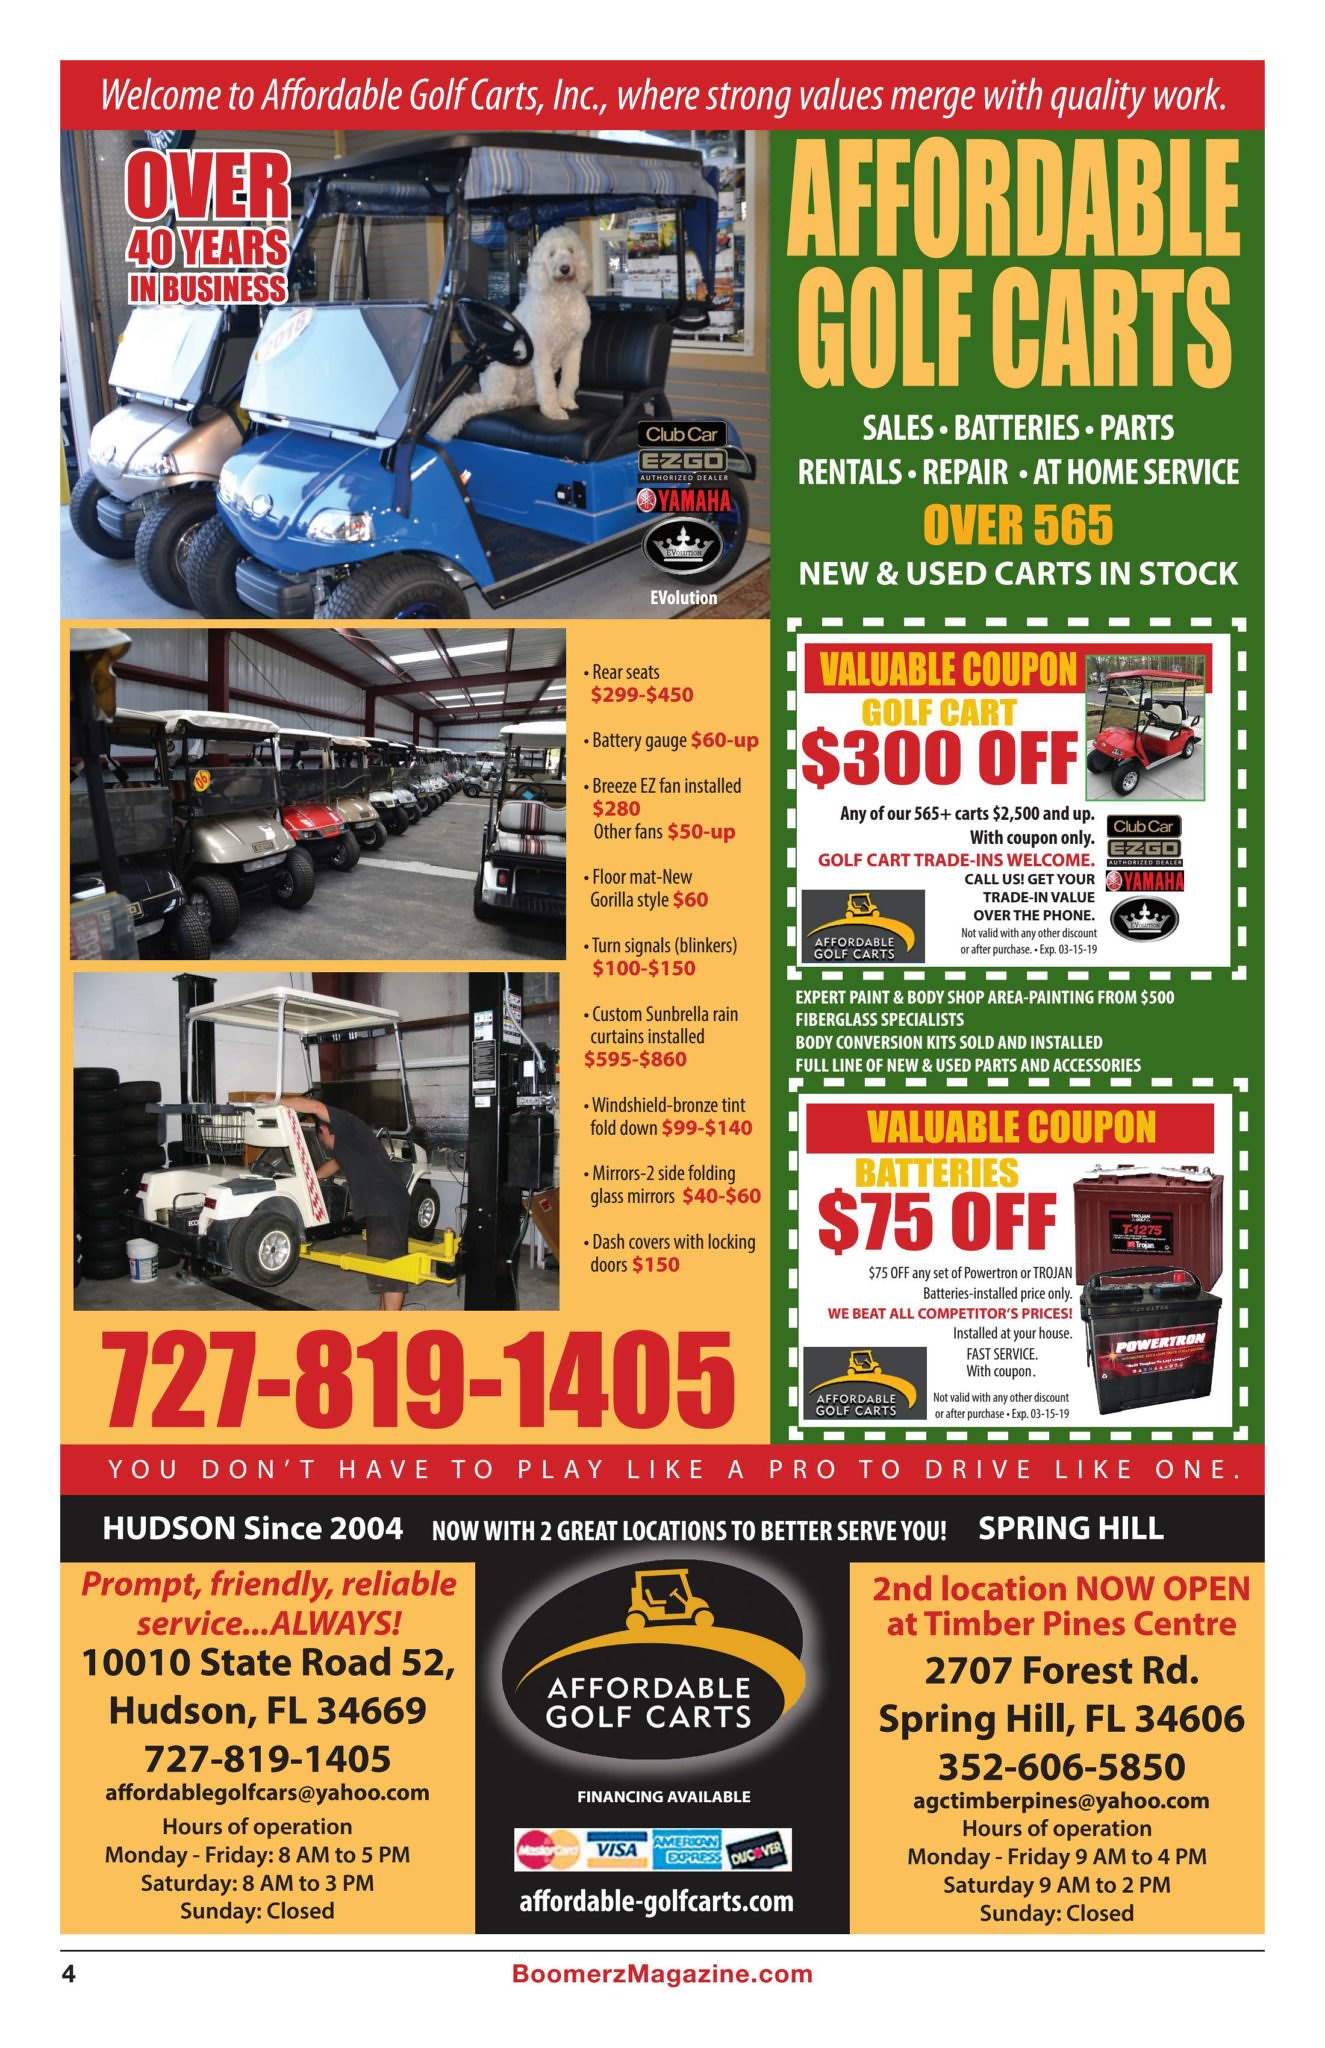 Boomerz Magazine 2018 November Affordable Golf Carts Ad